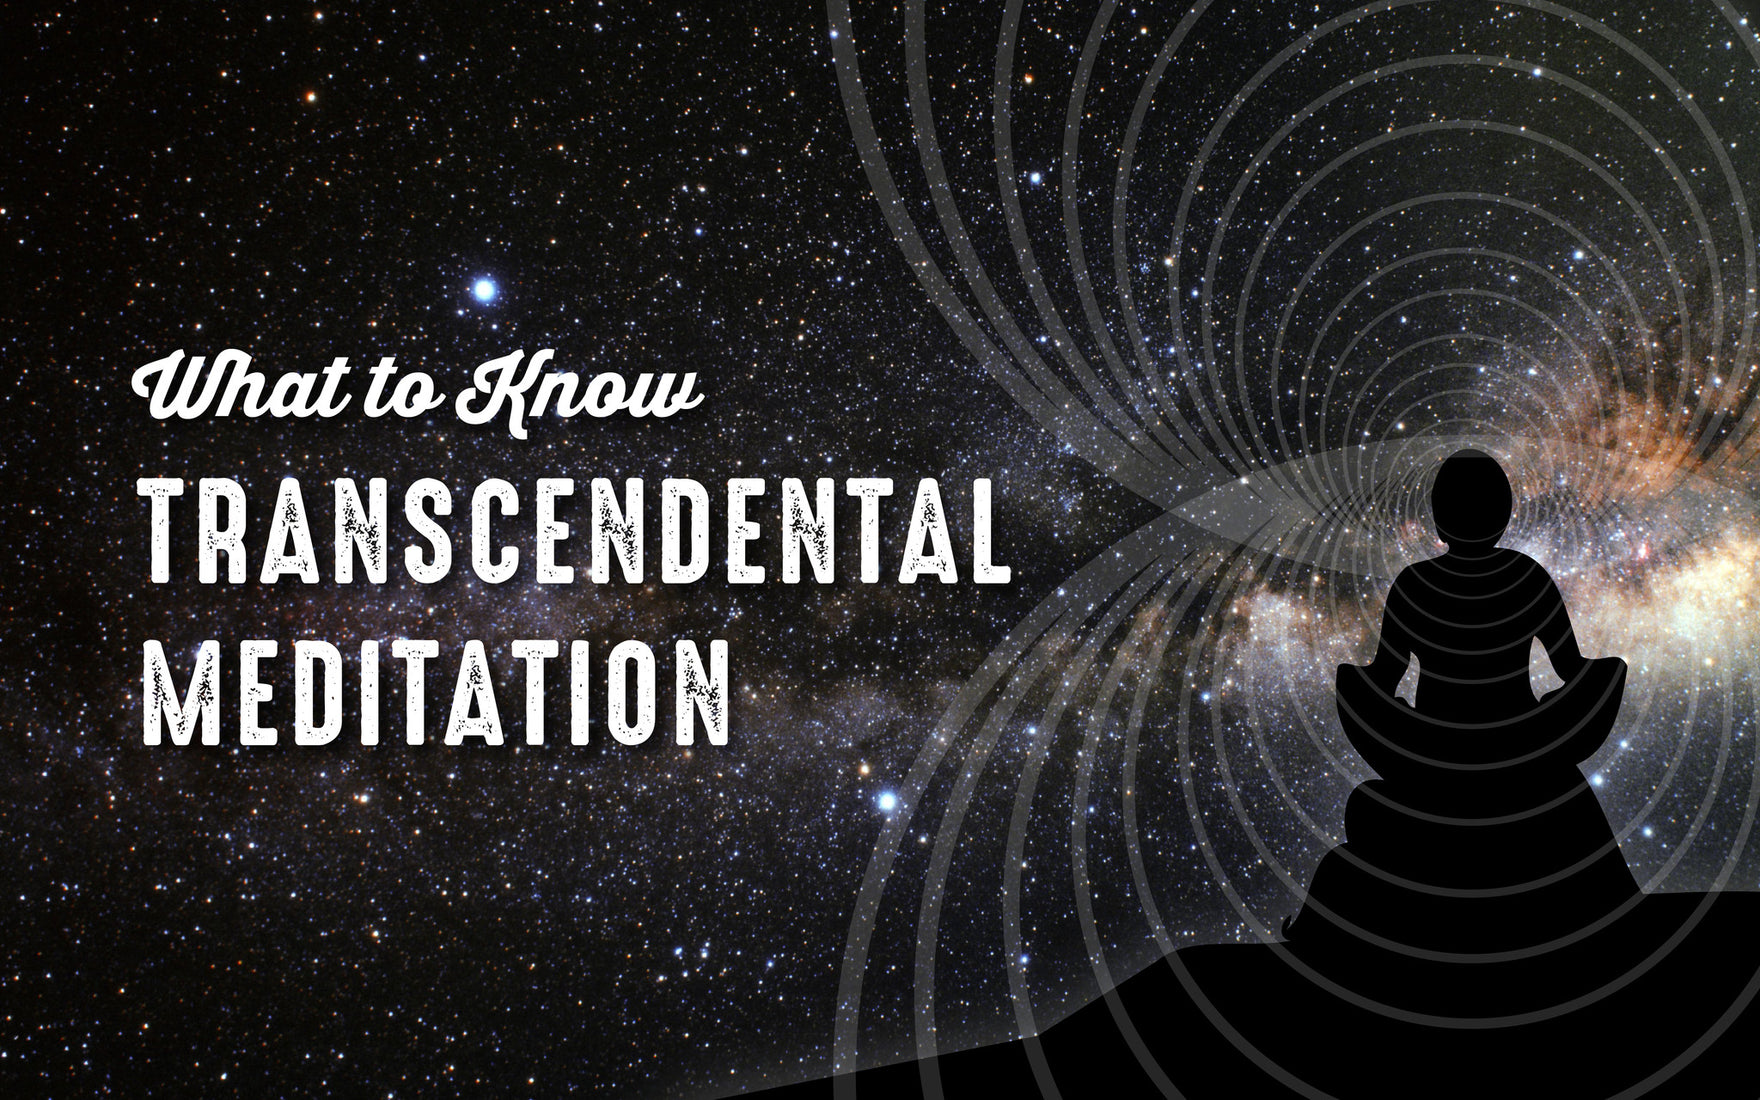 What to Know About Transcendental Meditation